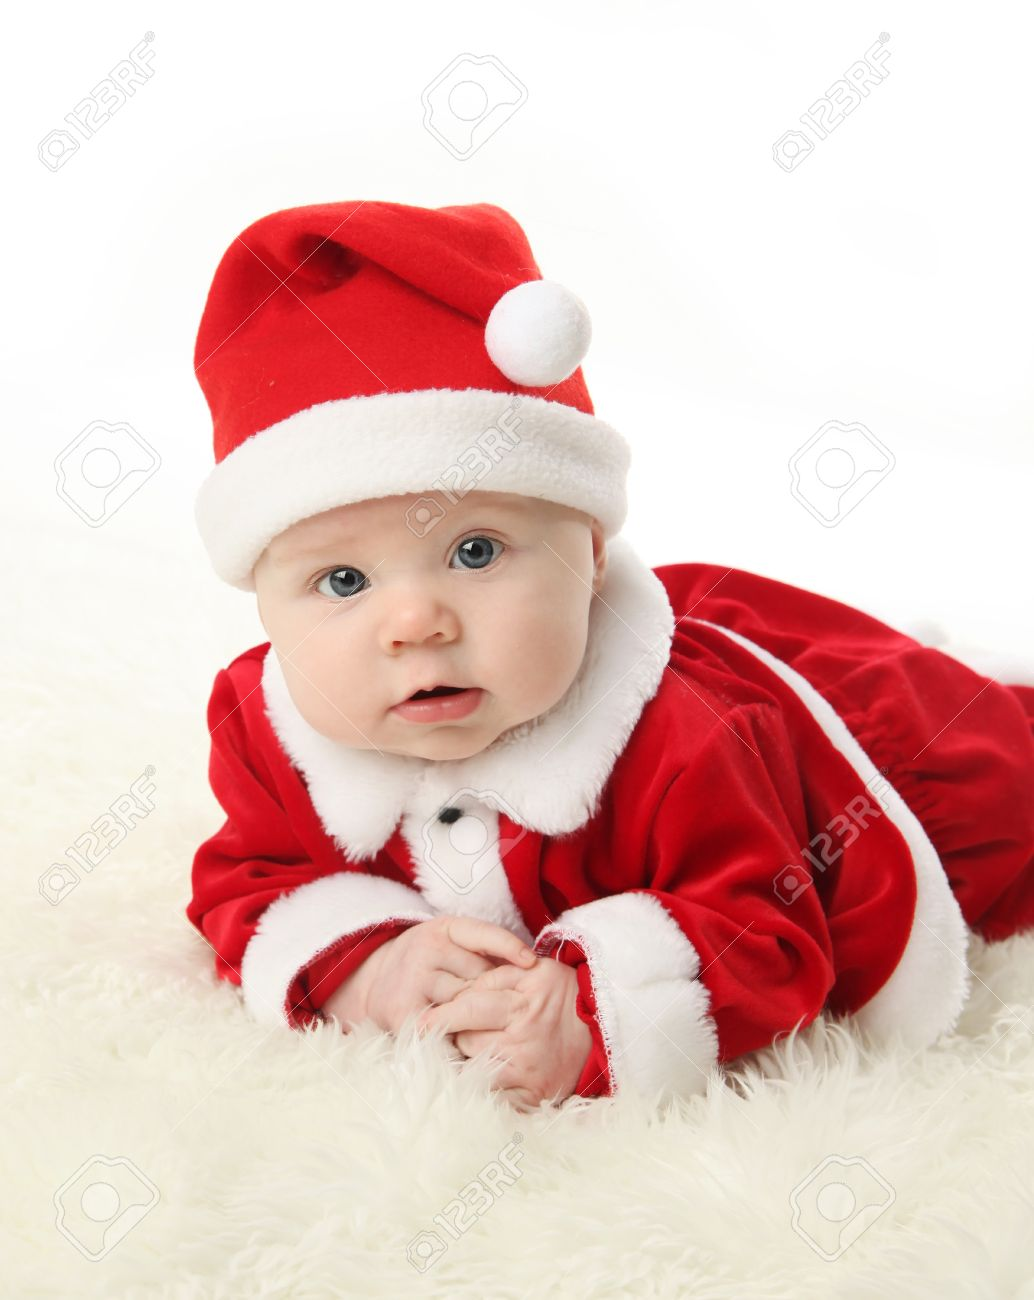 Baby lying on tummy wearing a red and white Christmas Santa hat and suit, isolated on a white background. Stock Photo - 8382886